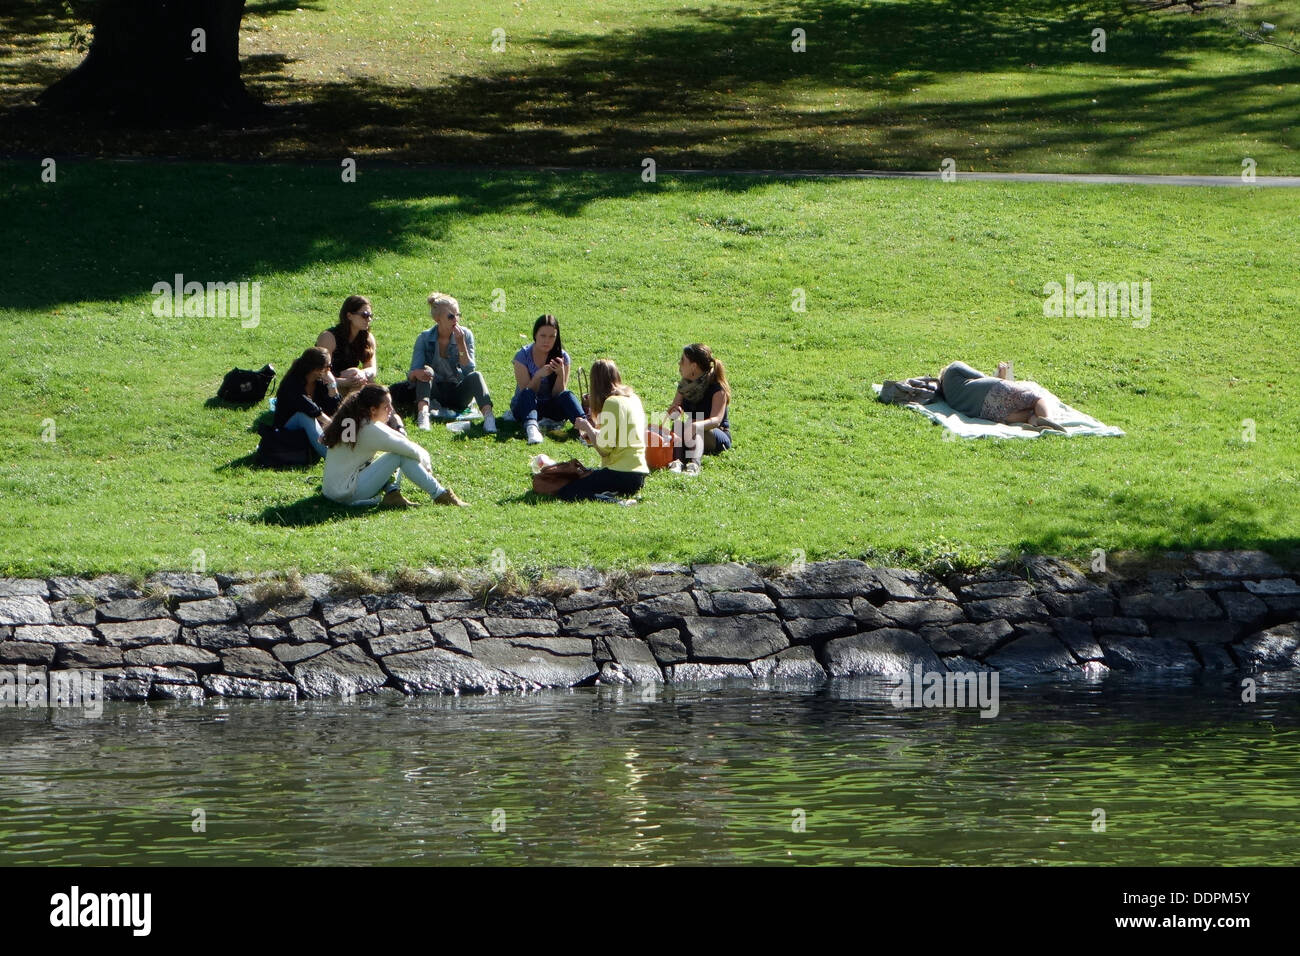 Girls have a picnic on the riverbank in a park, Gothenburg, Sweden - Stock Image